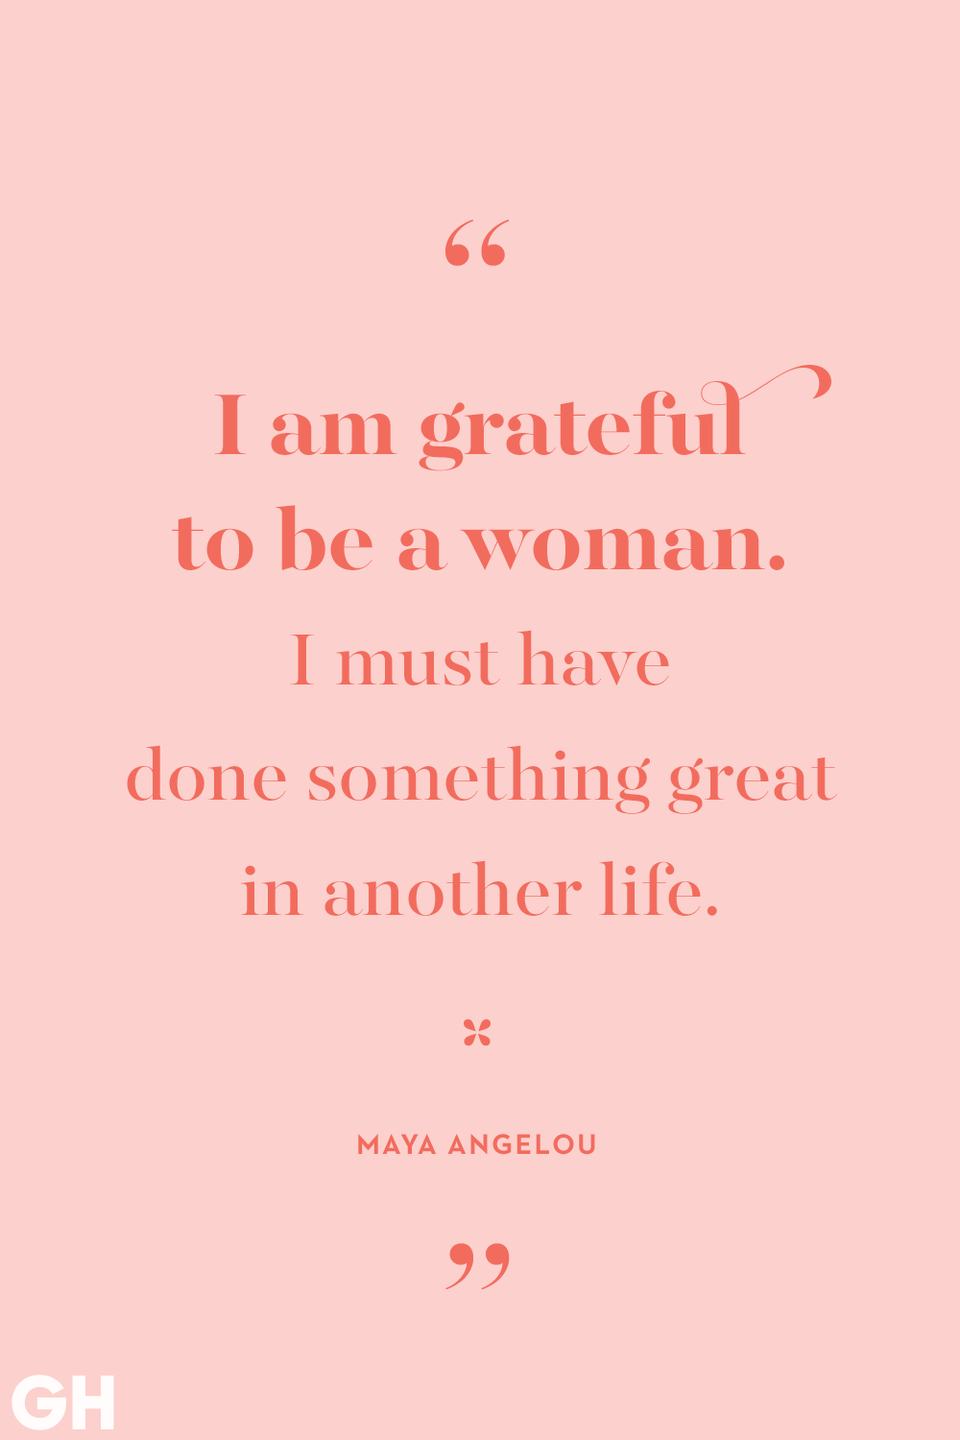 <p>I am grateful to be a woman. I must have done something great in another life.</p>